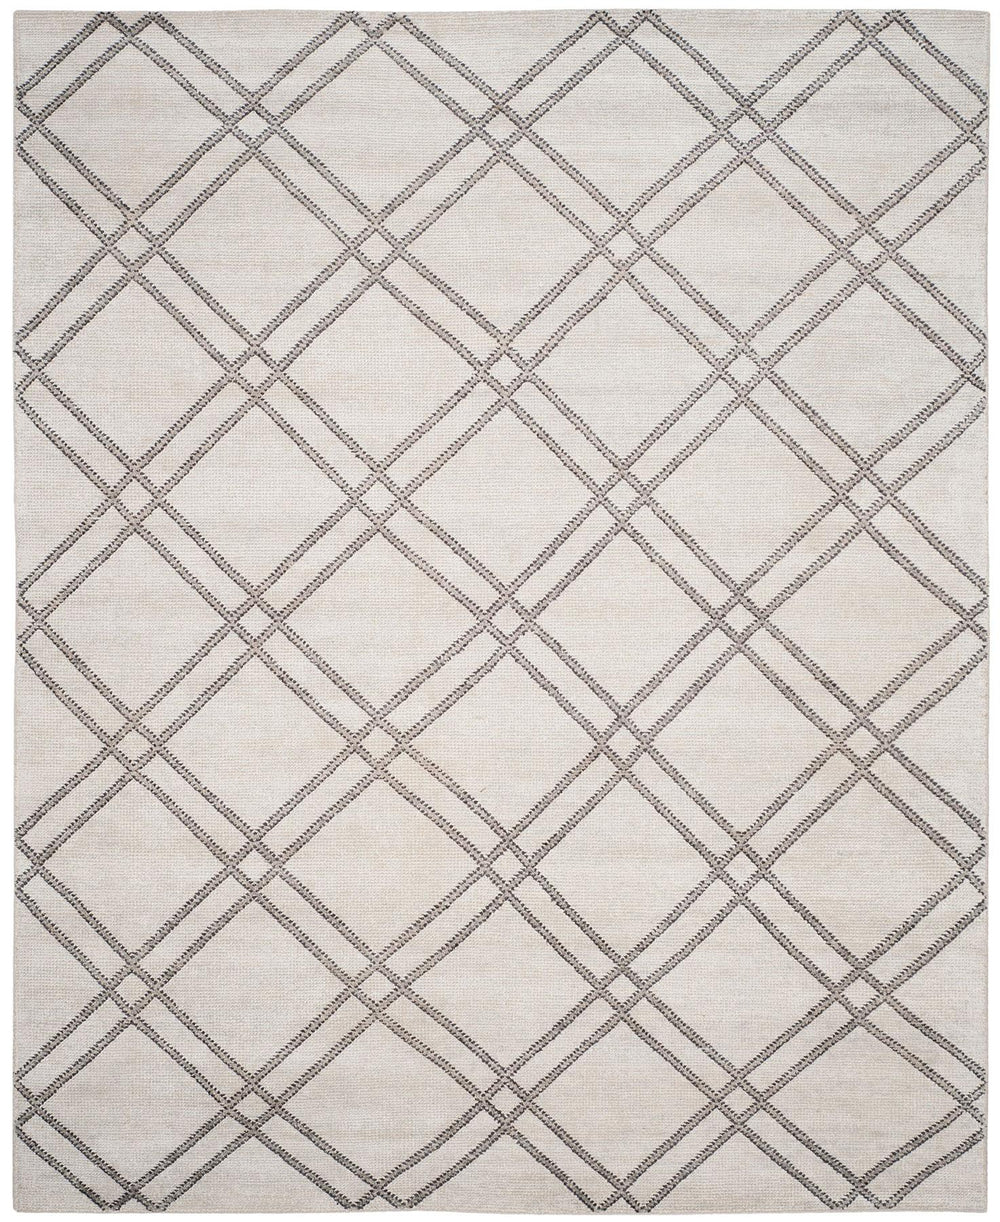 Safavieh Stone Wash STW701C Steel/ Grey